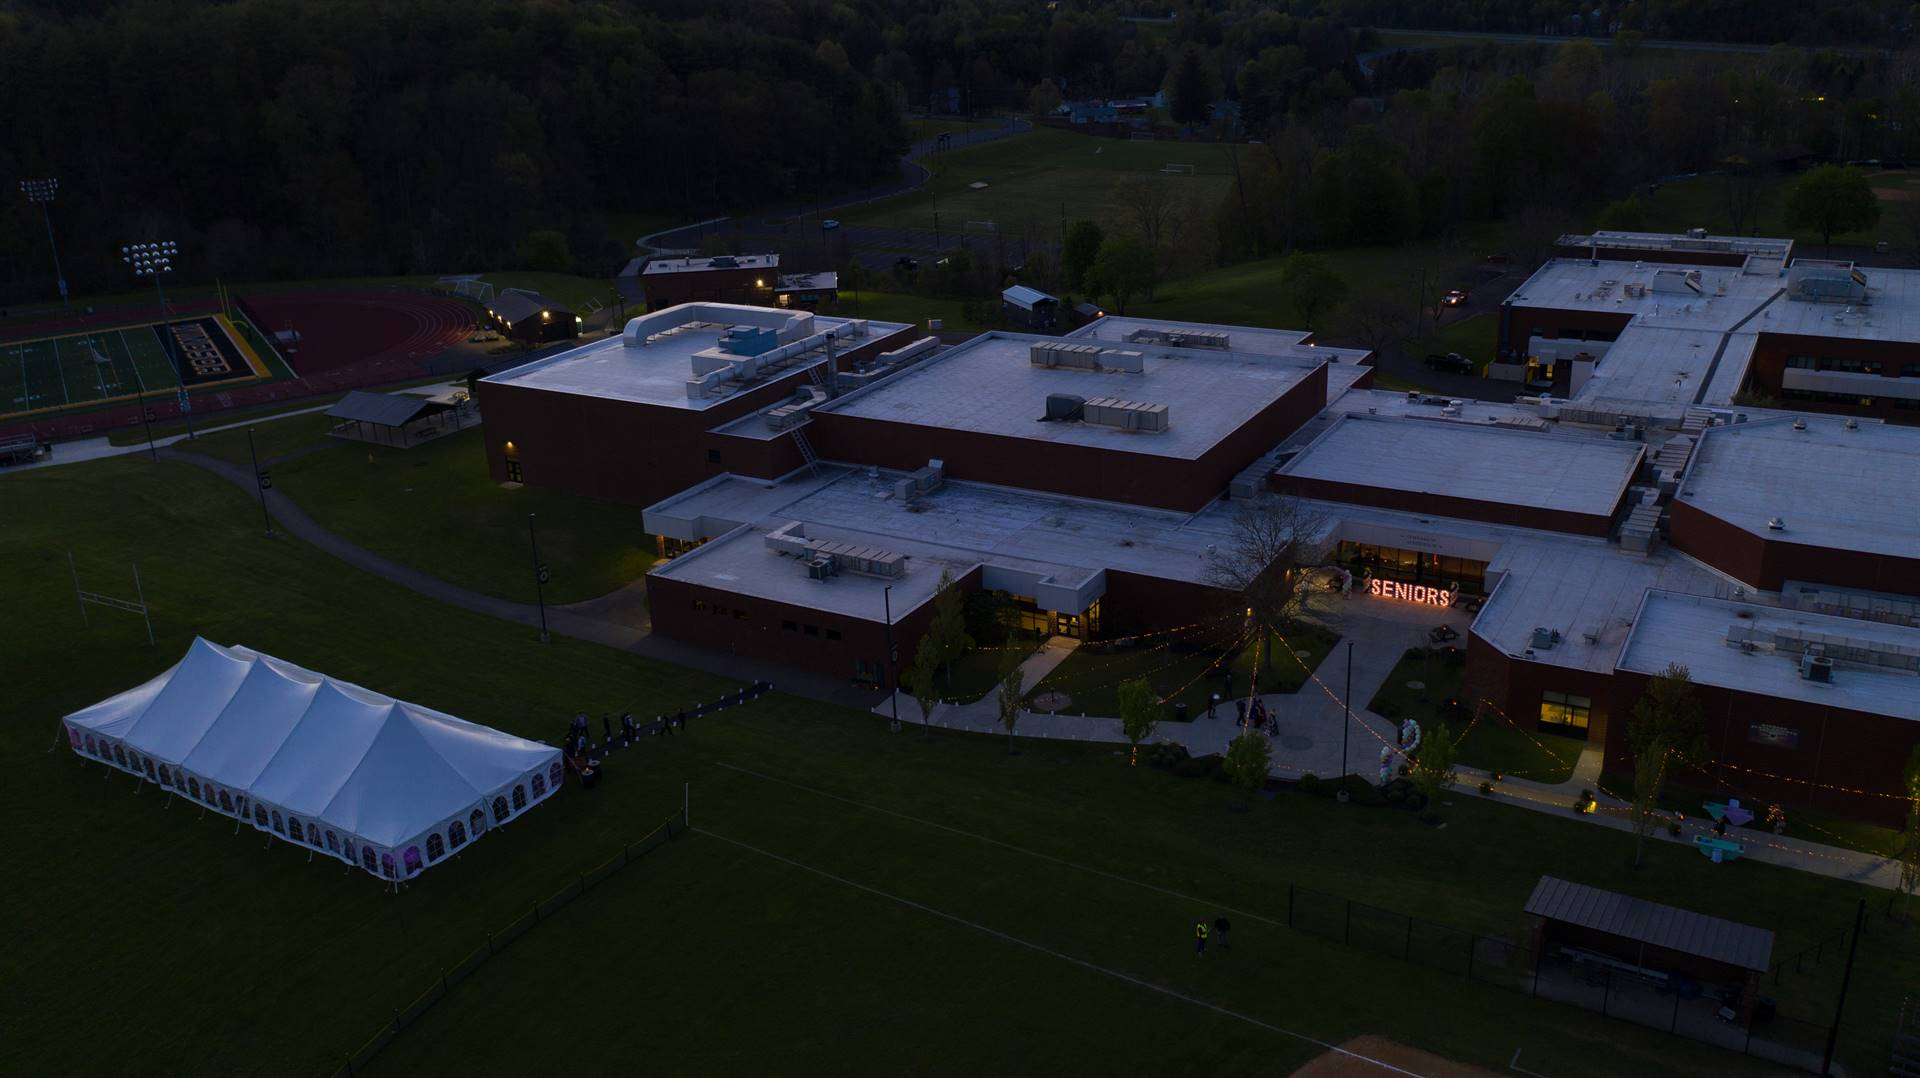 Arial view of WCHS building at dusk